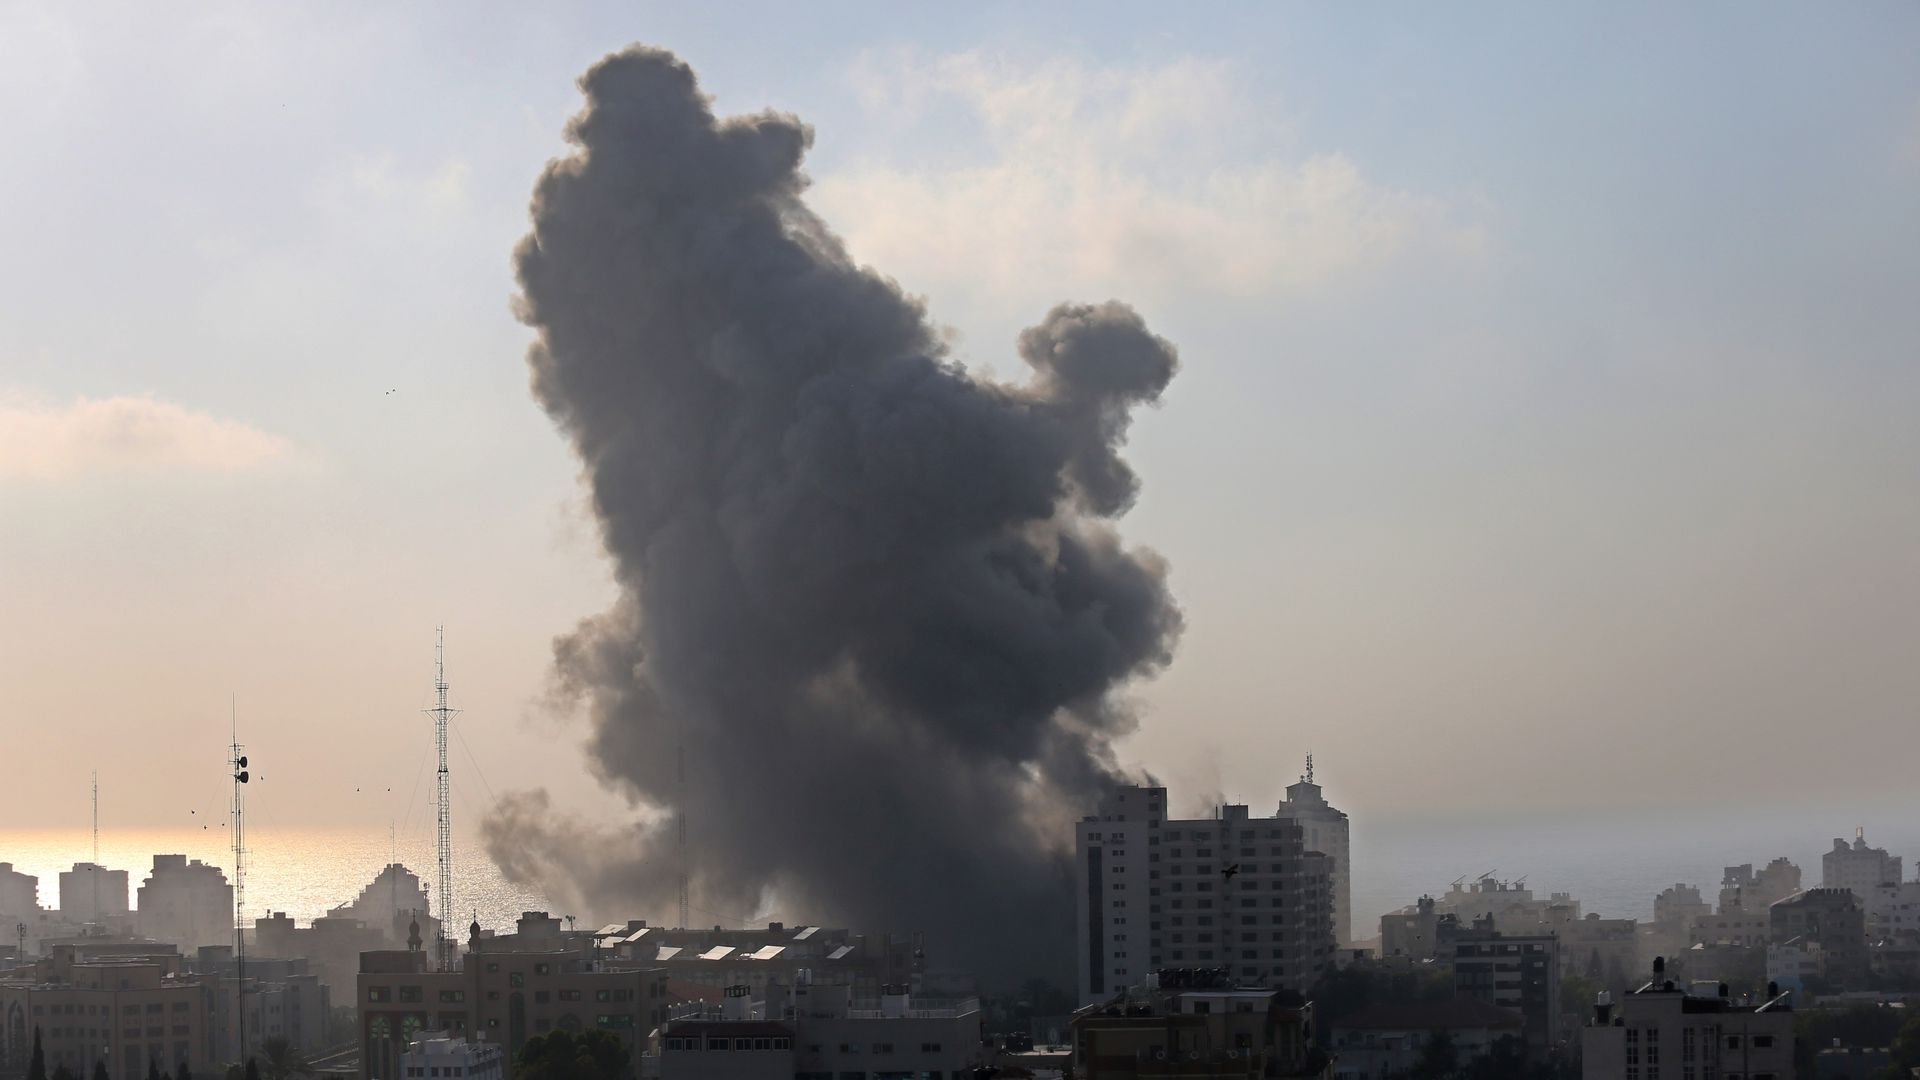 The aftermath of airstrikes in Gaza